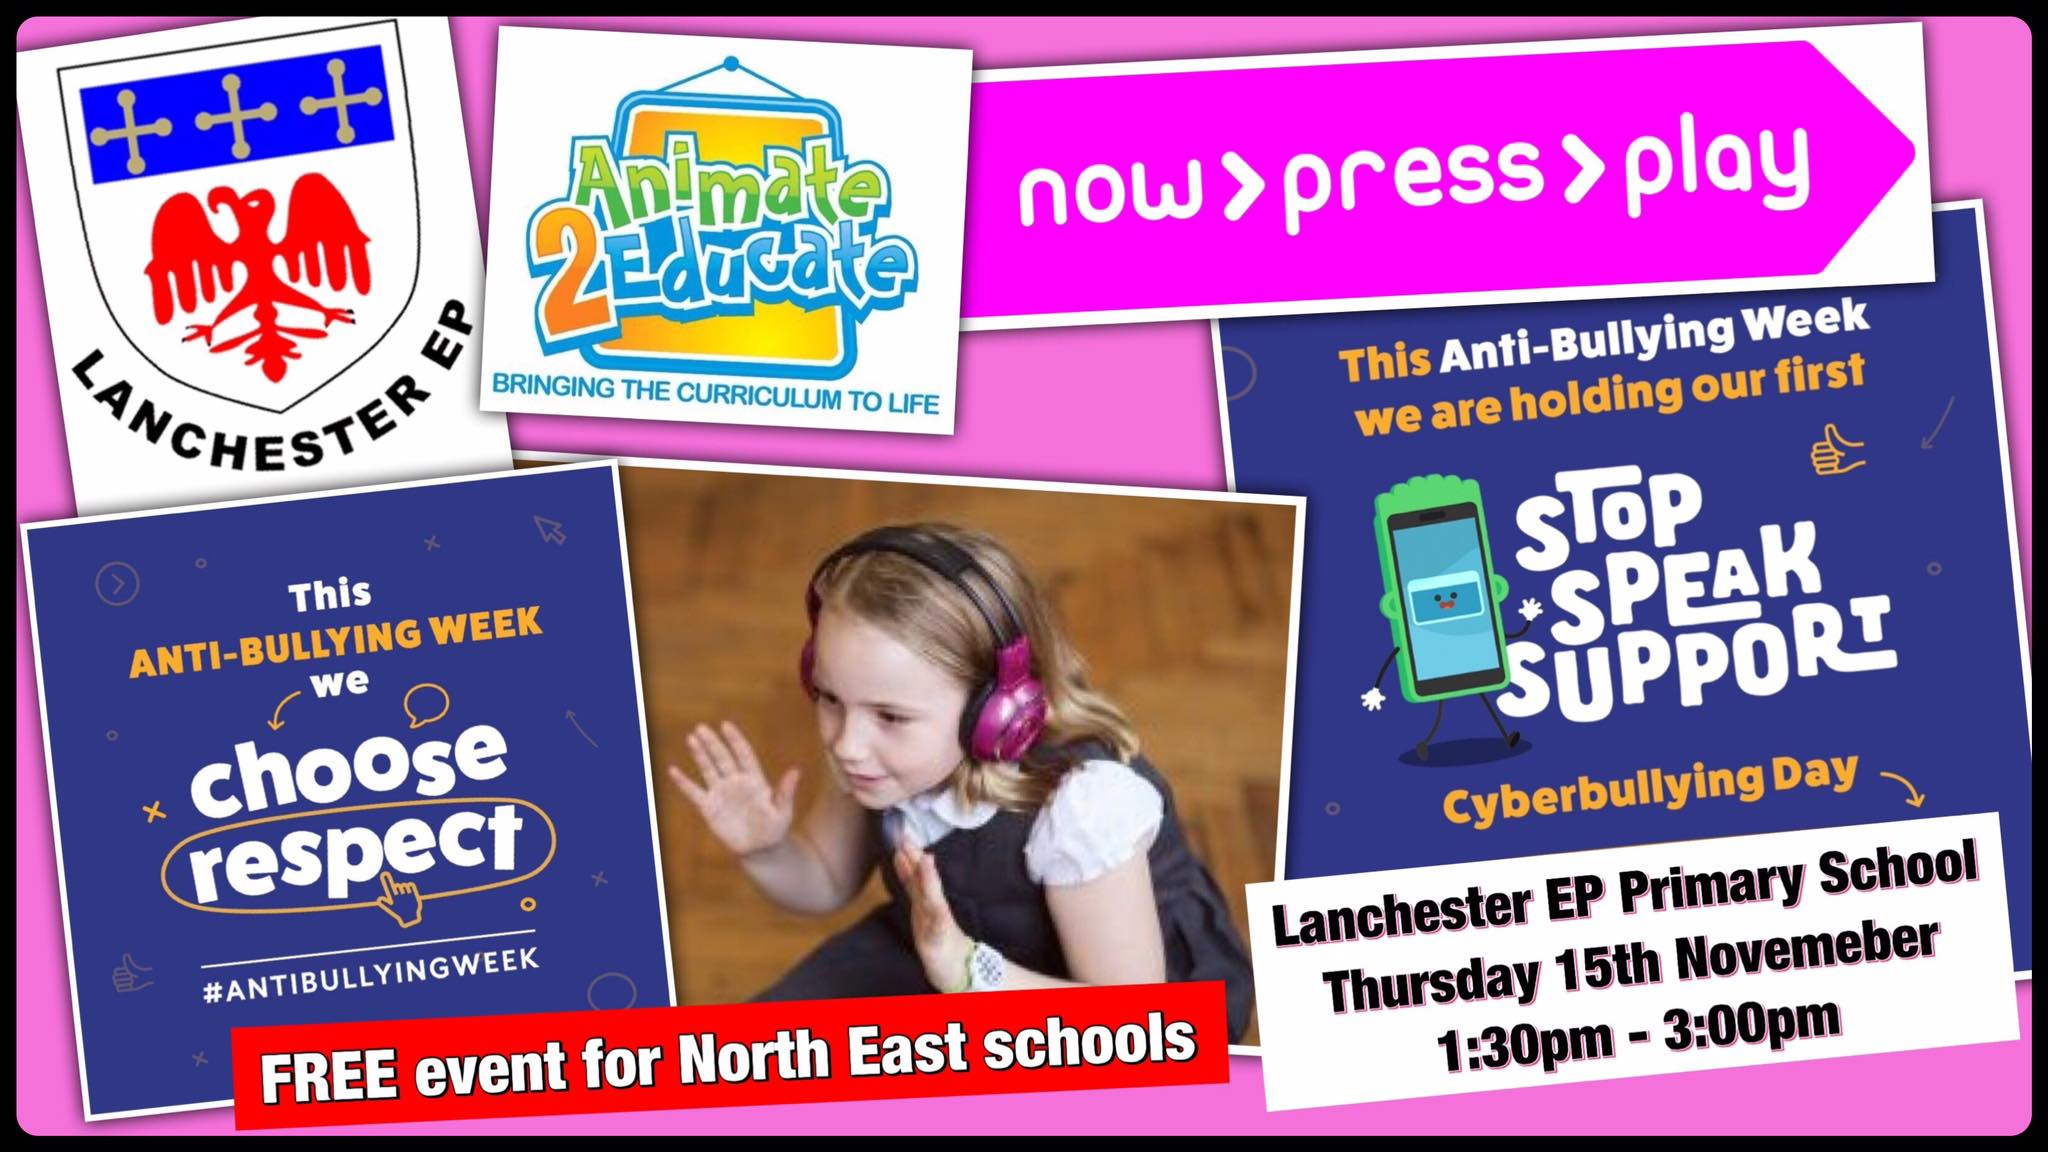 A Free Anti-Bullying Event for North East Schools